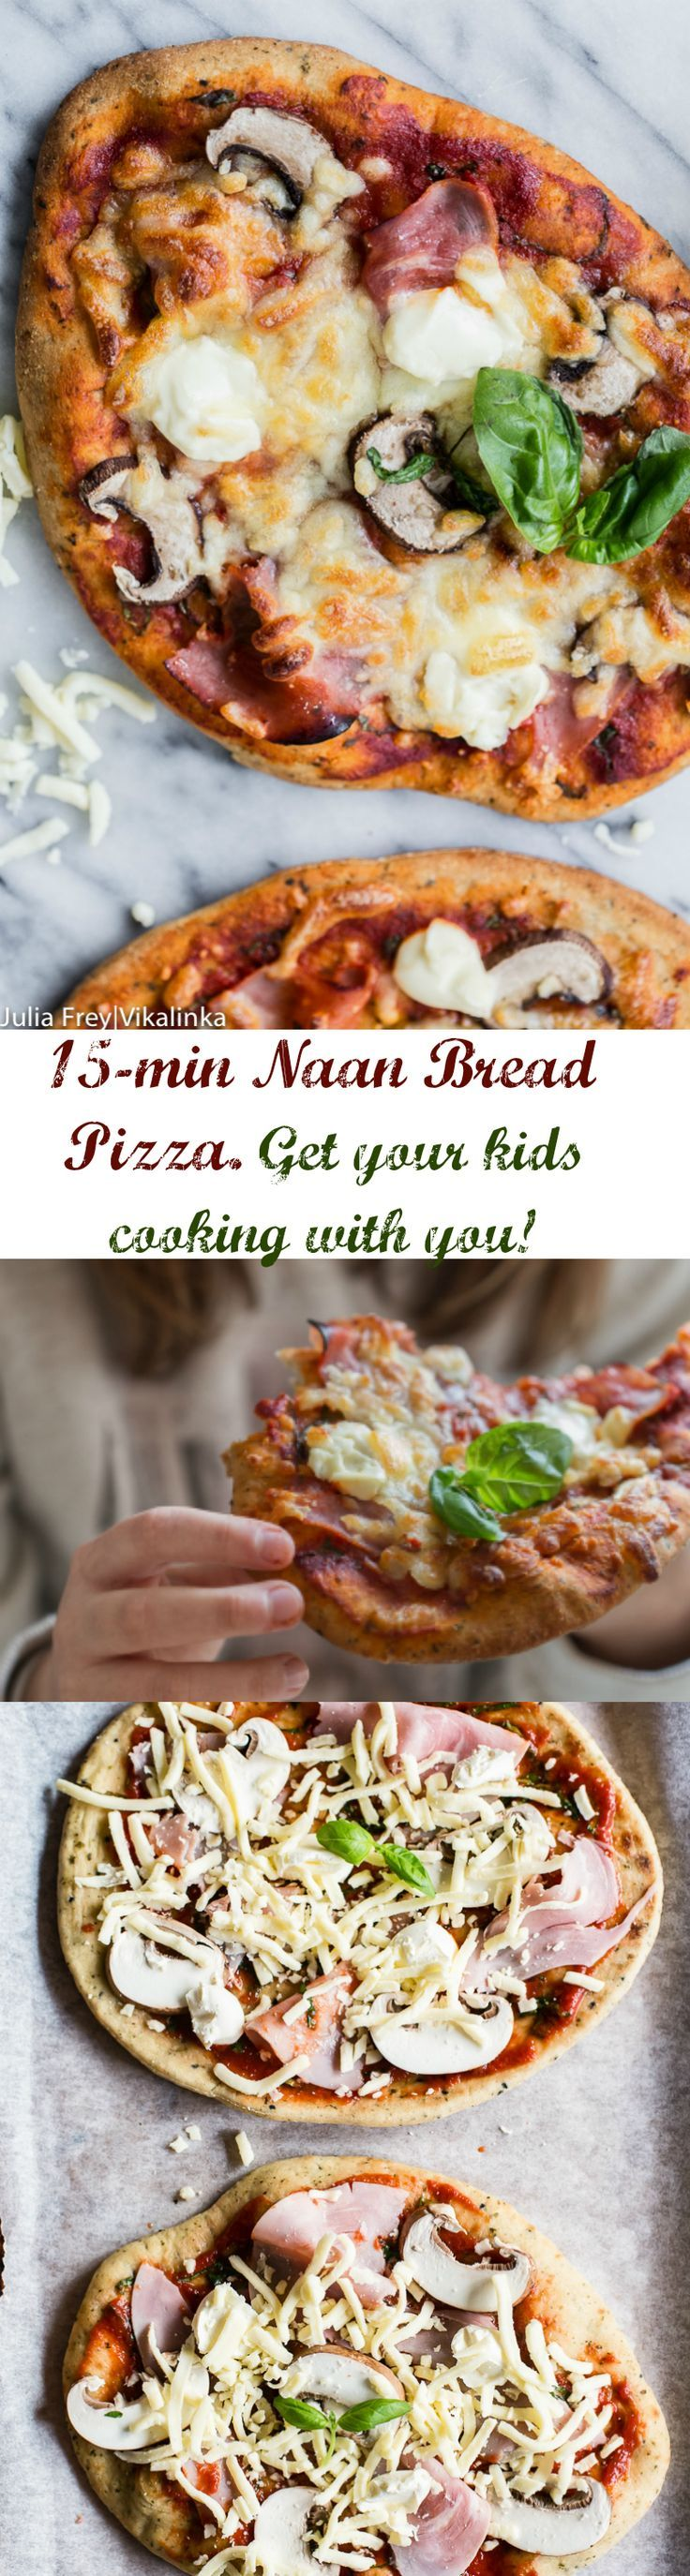 This quick naan bread pizza will soon become the first thing you turn to on Friday night. Top it with ham, mushrooms and mascarpone or any toppings you like!